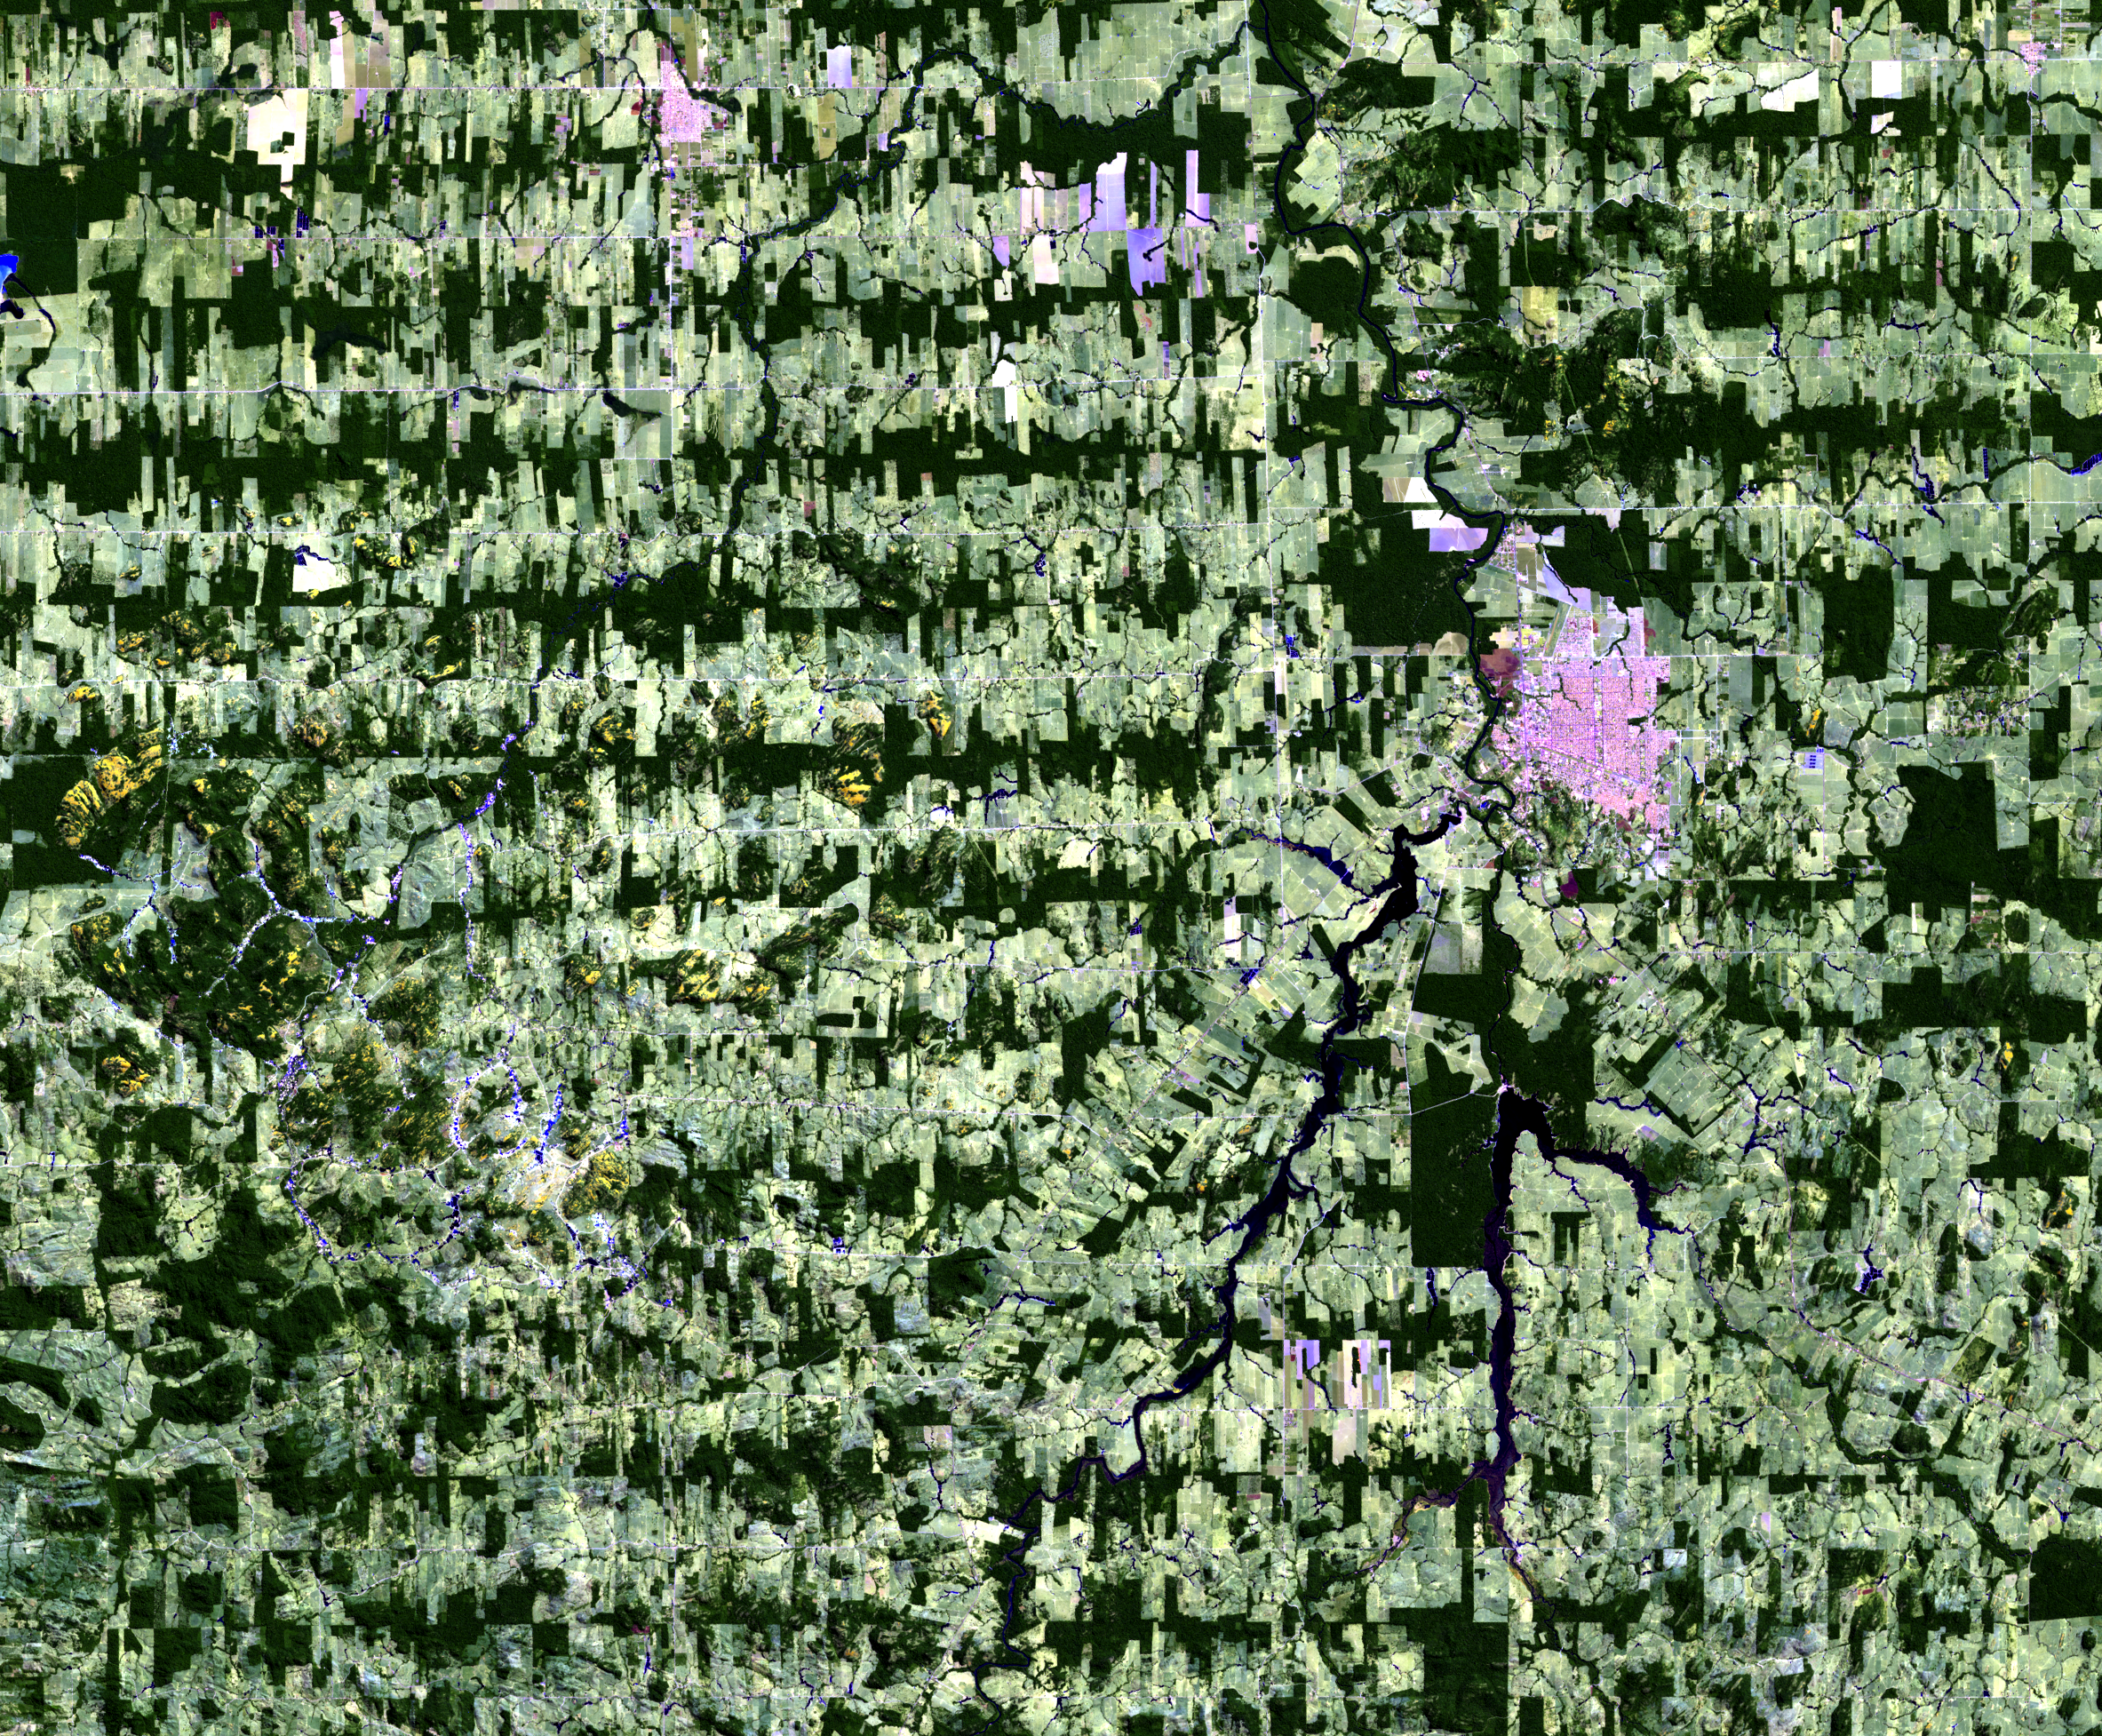 July 18, 2016, Landsat 8 (path/row 232/67) — Ariquemes, Brazil